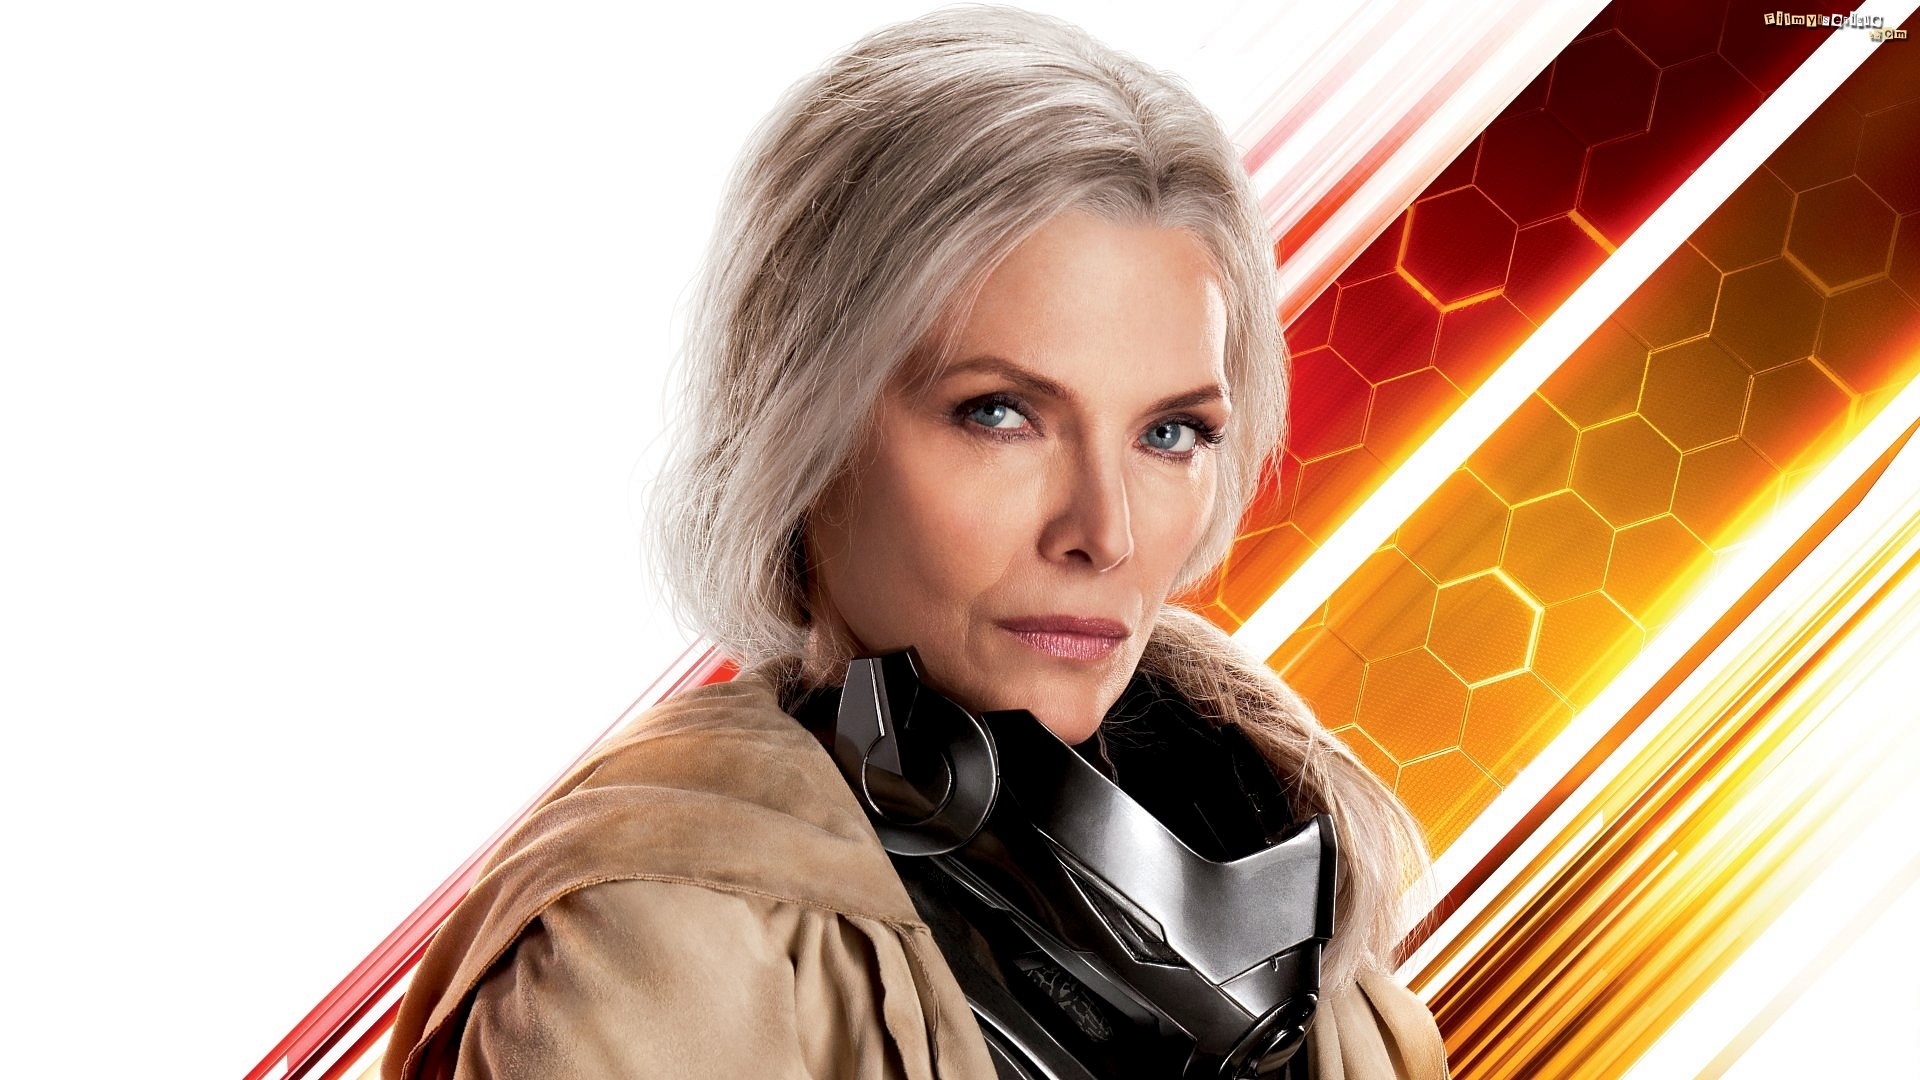 Film, Ant-Man i Osa, Ant-Man and the Wasp, Postać Wasp, Aktorka, Michelle Pfeiffer